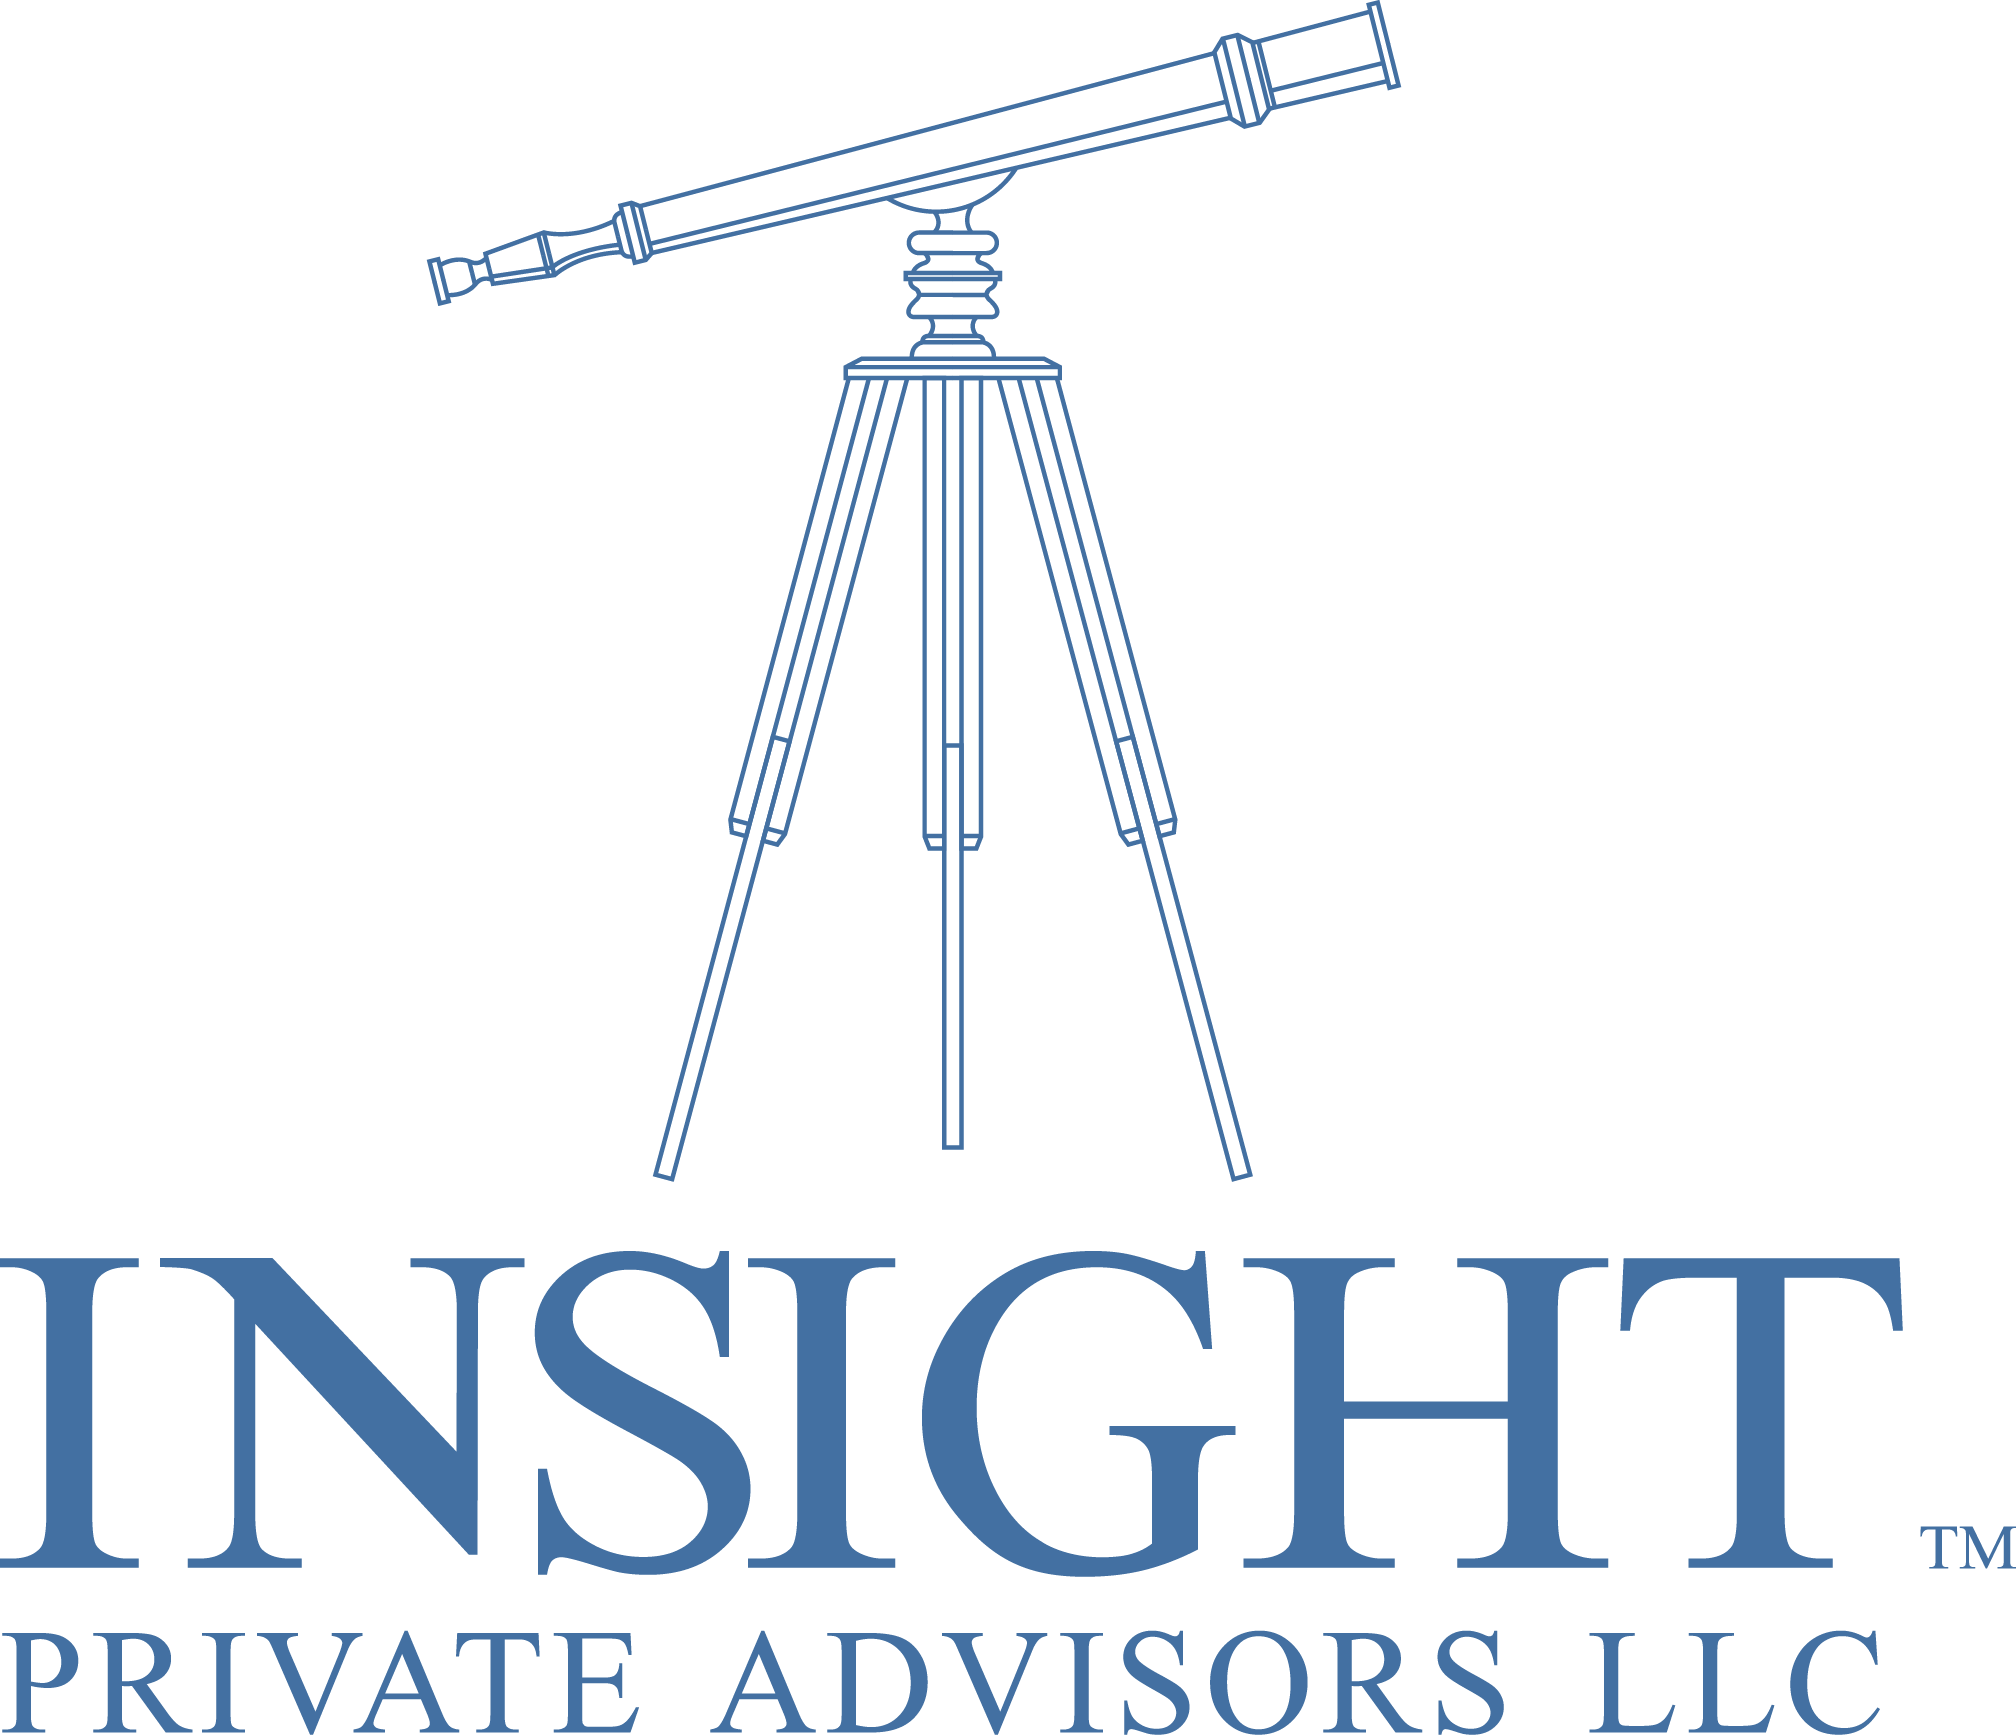 Insight Private Advisors, LLC - Bridgewater, NJ